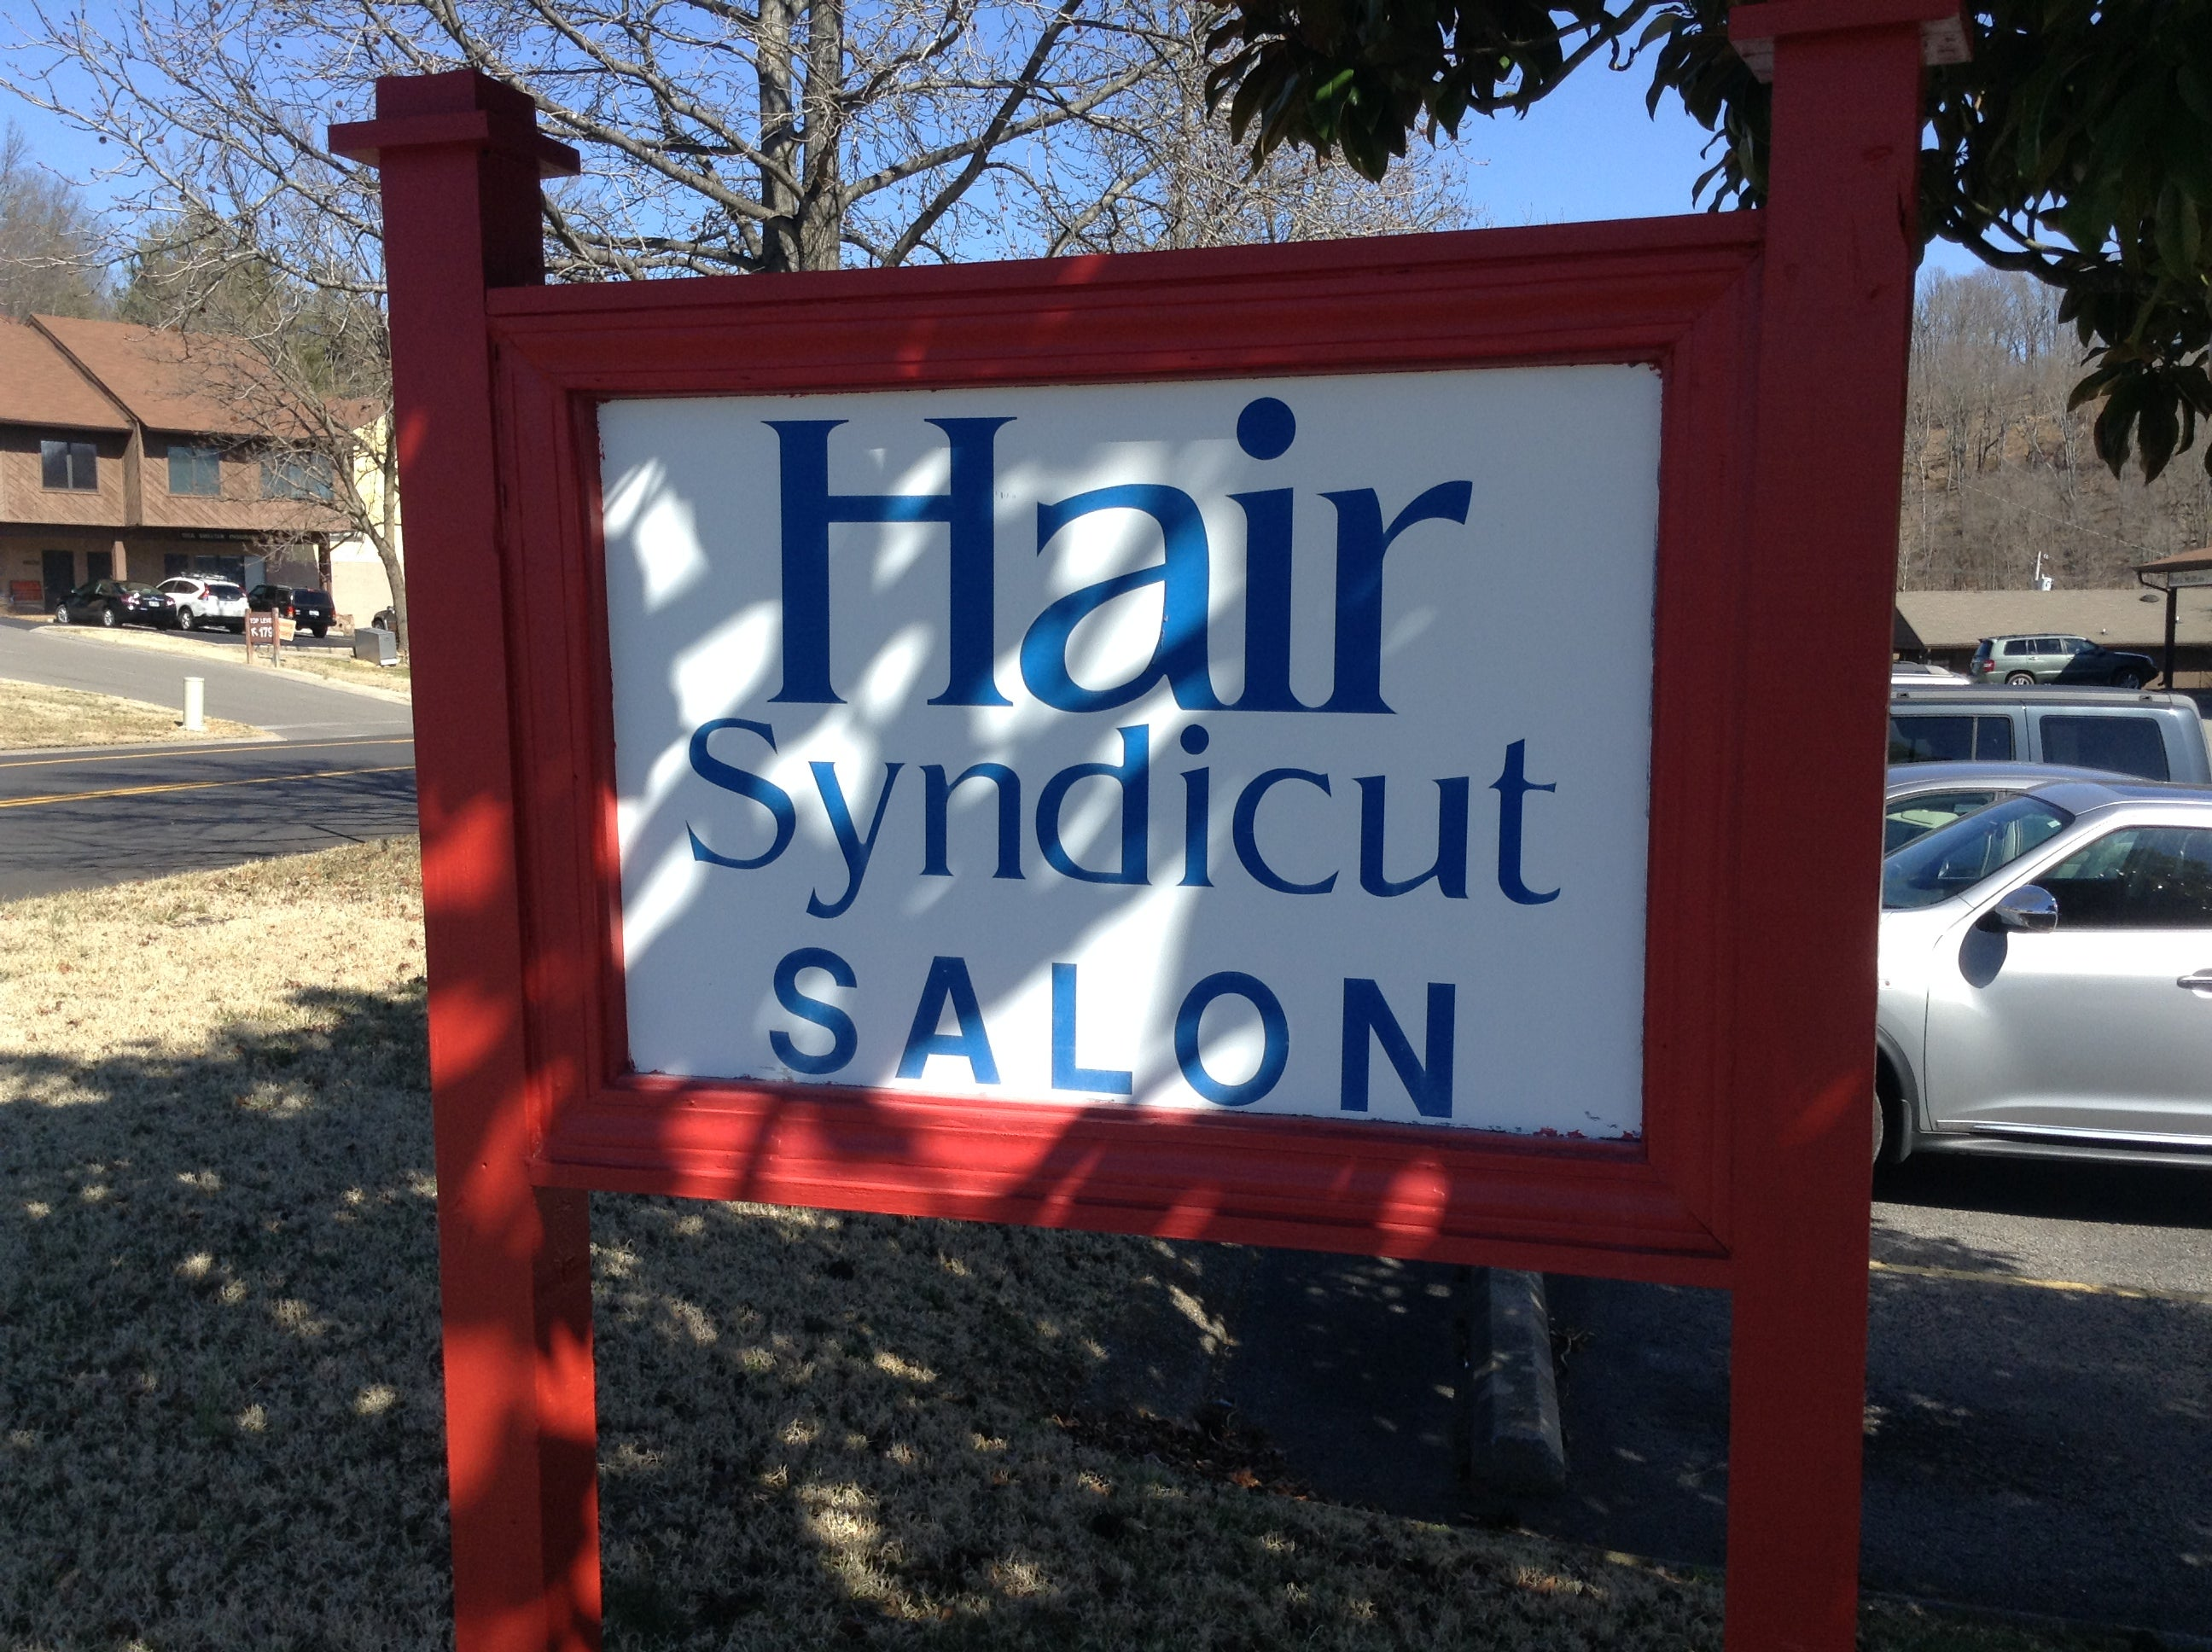 Hair Syndicut,